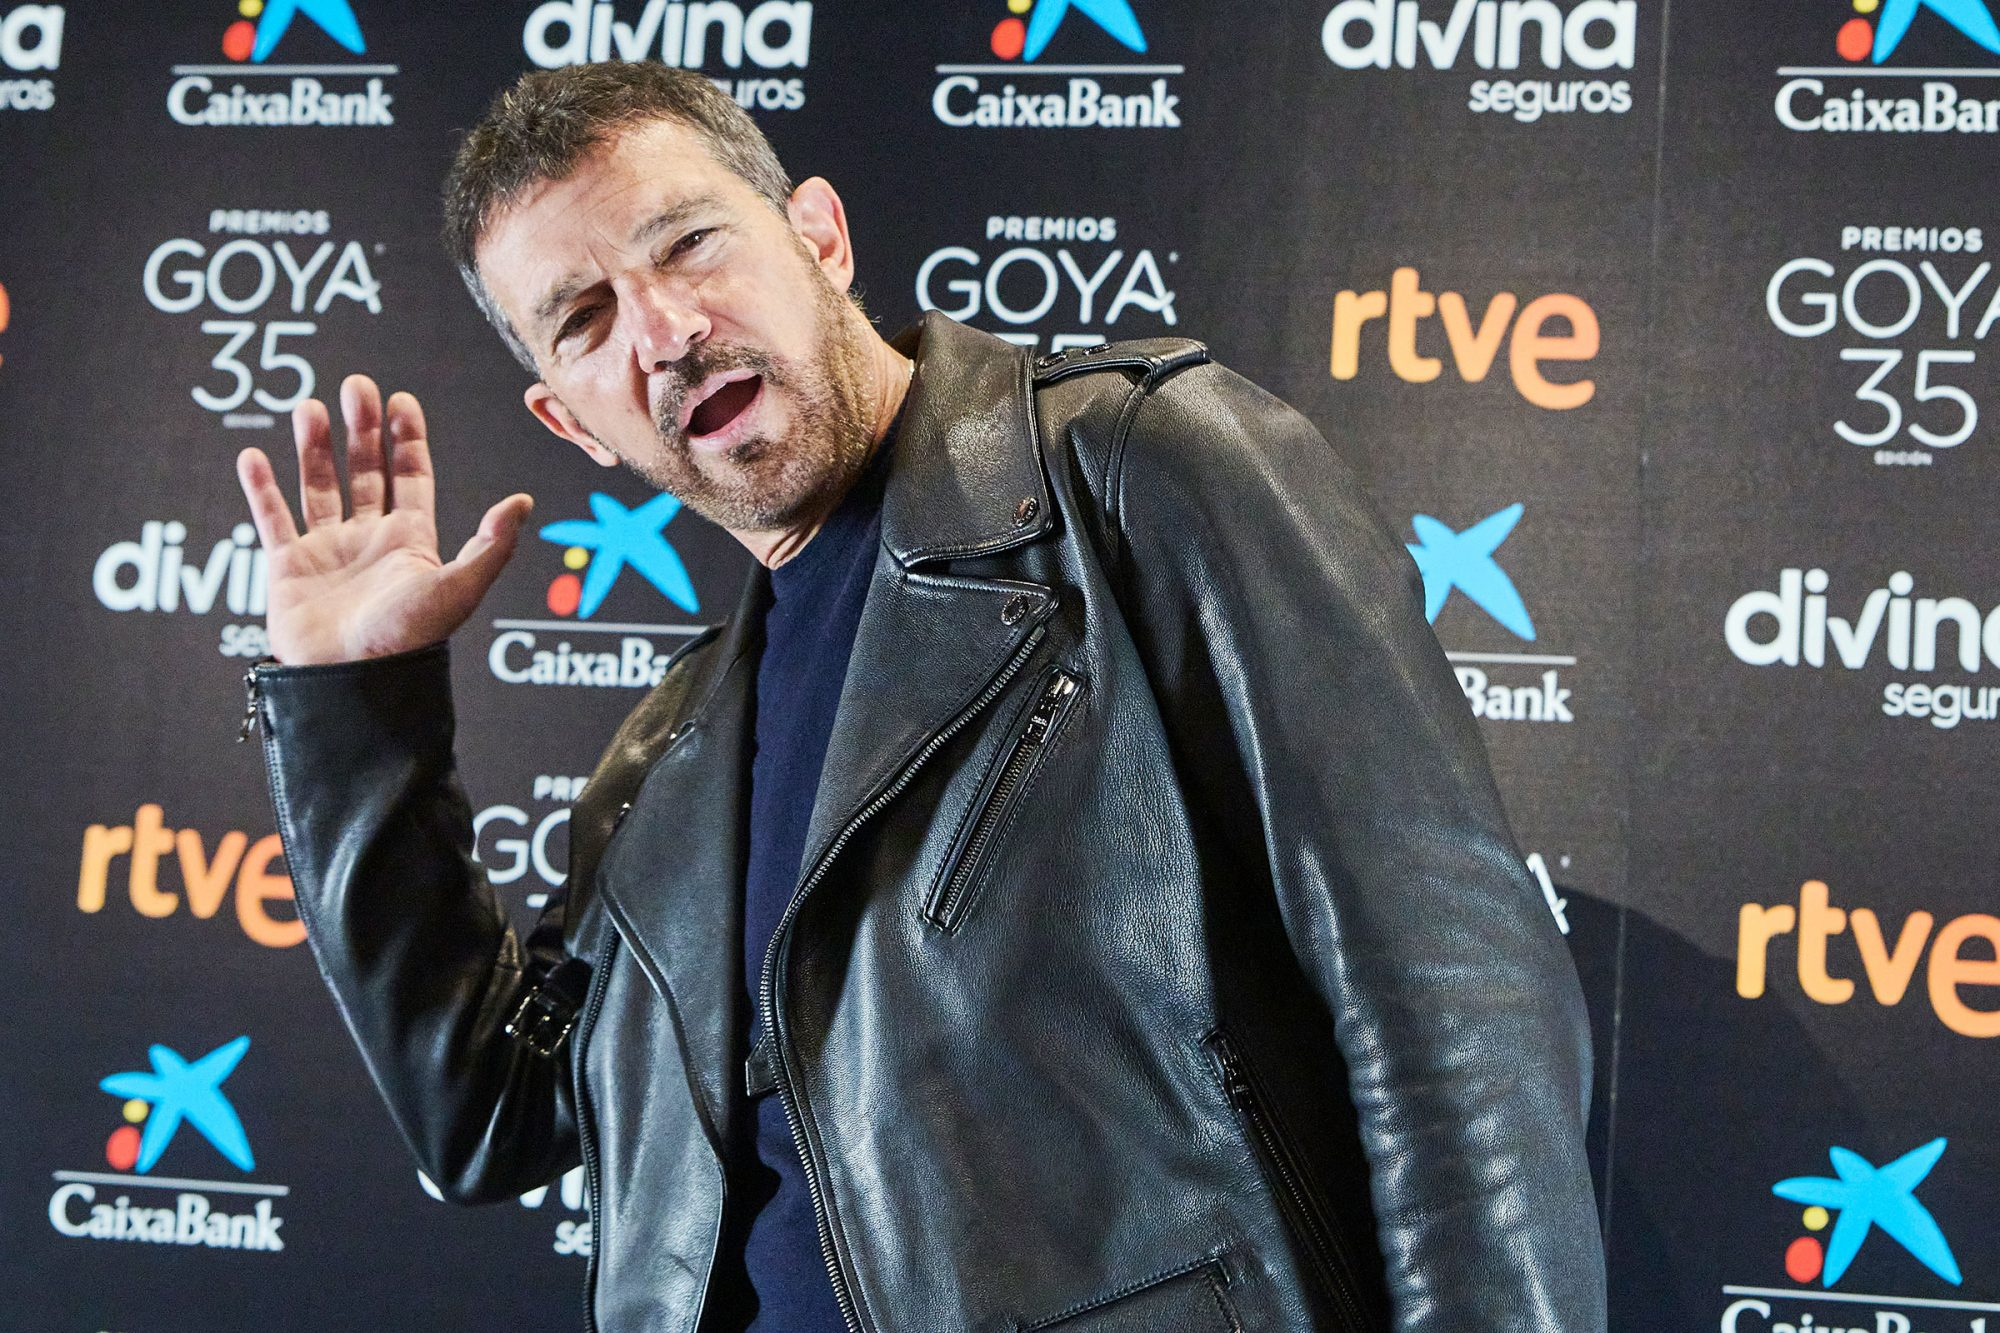 February 2, 2021, Madrid, Spain: Antonio Banderas attends '35th Goya Awards' press conference at Cinema Academy on February 2, 2021 in Madrid, Spain